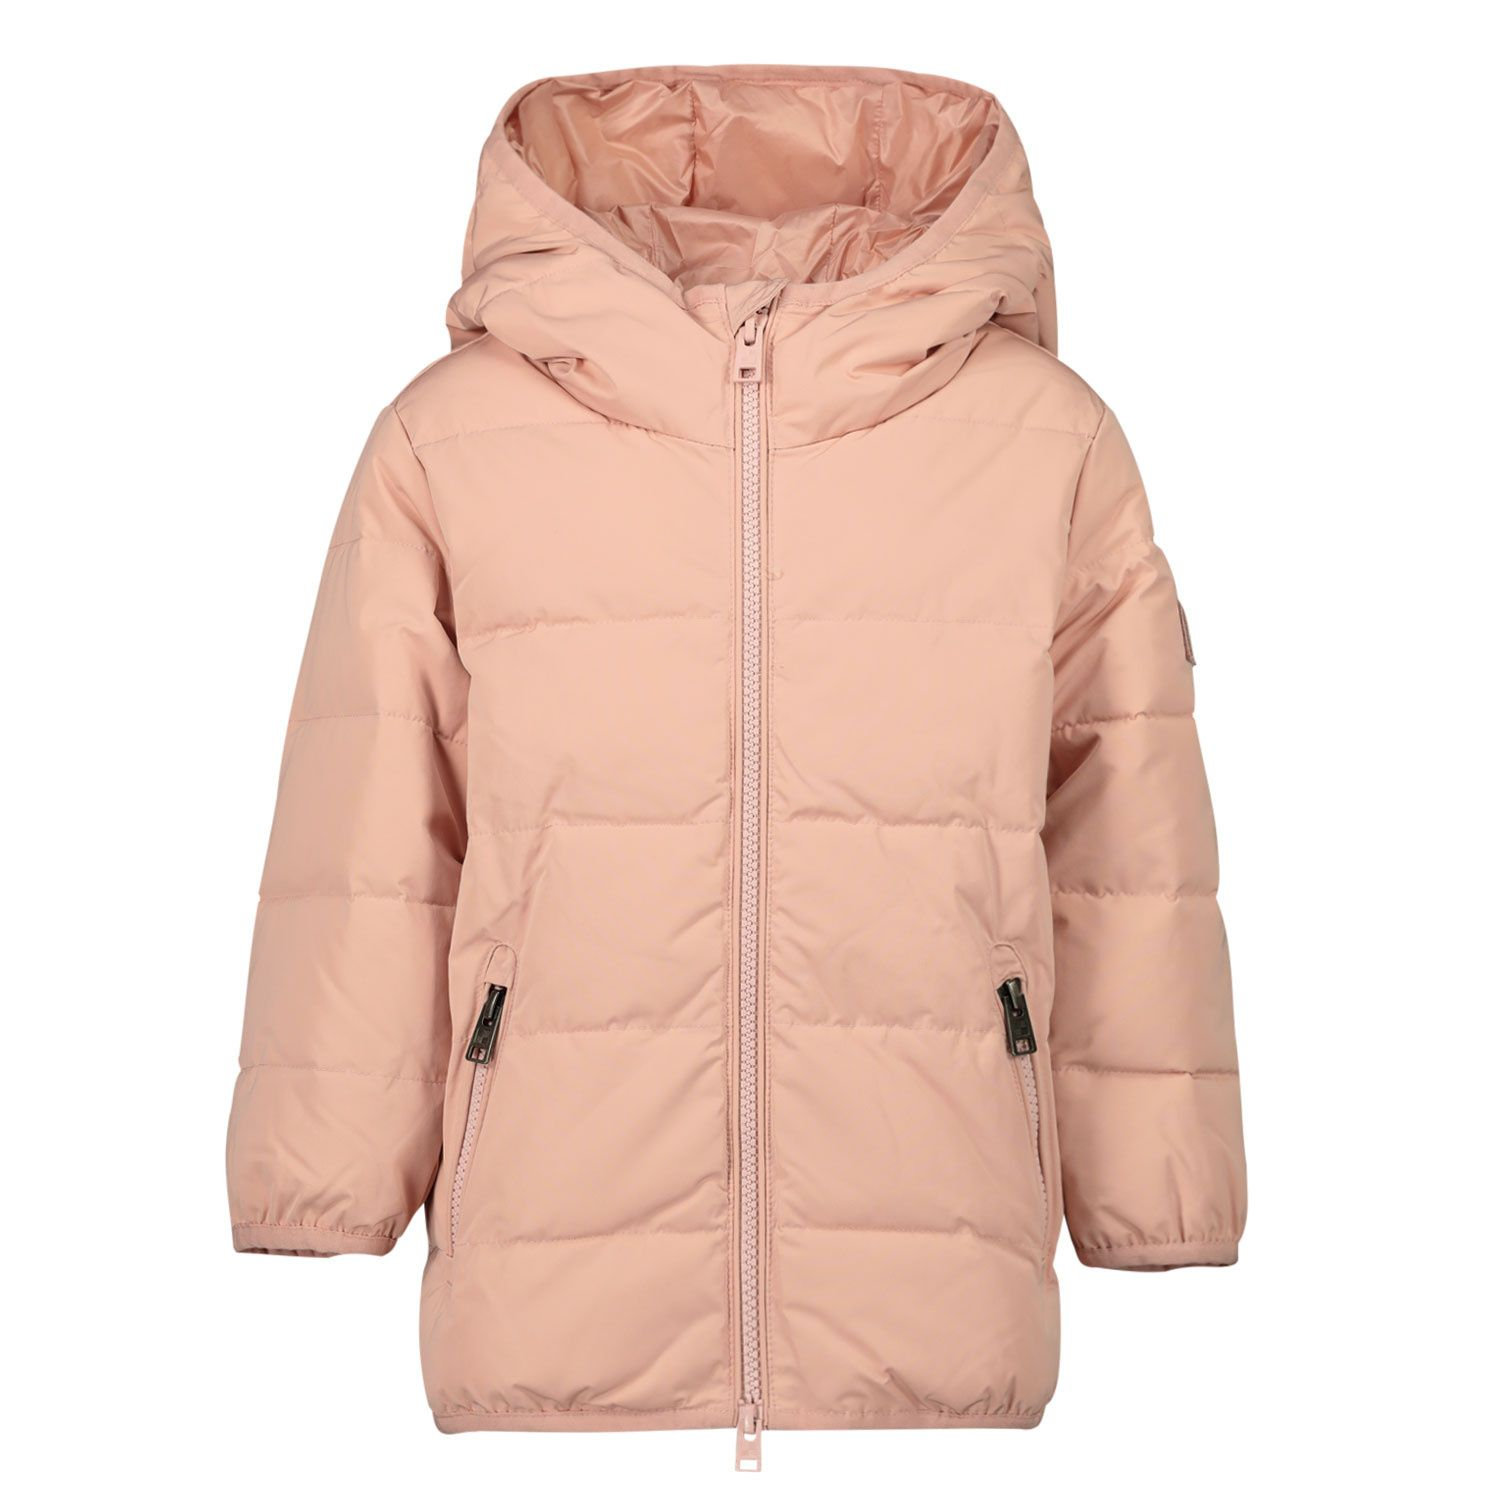 Picture of Woolrich WKOU0144MR baby coat light pink